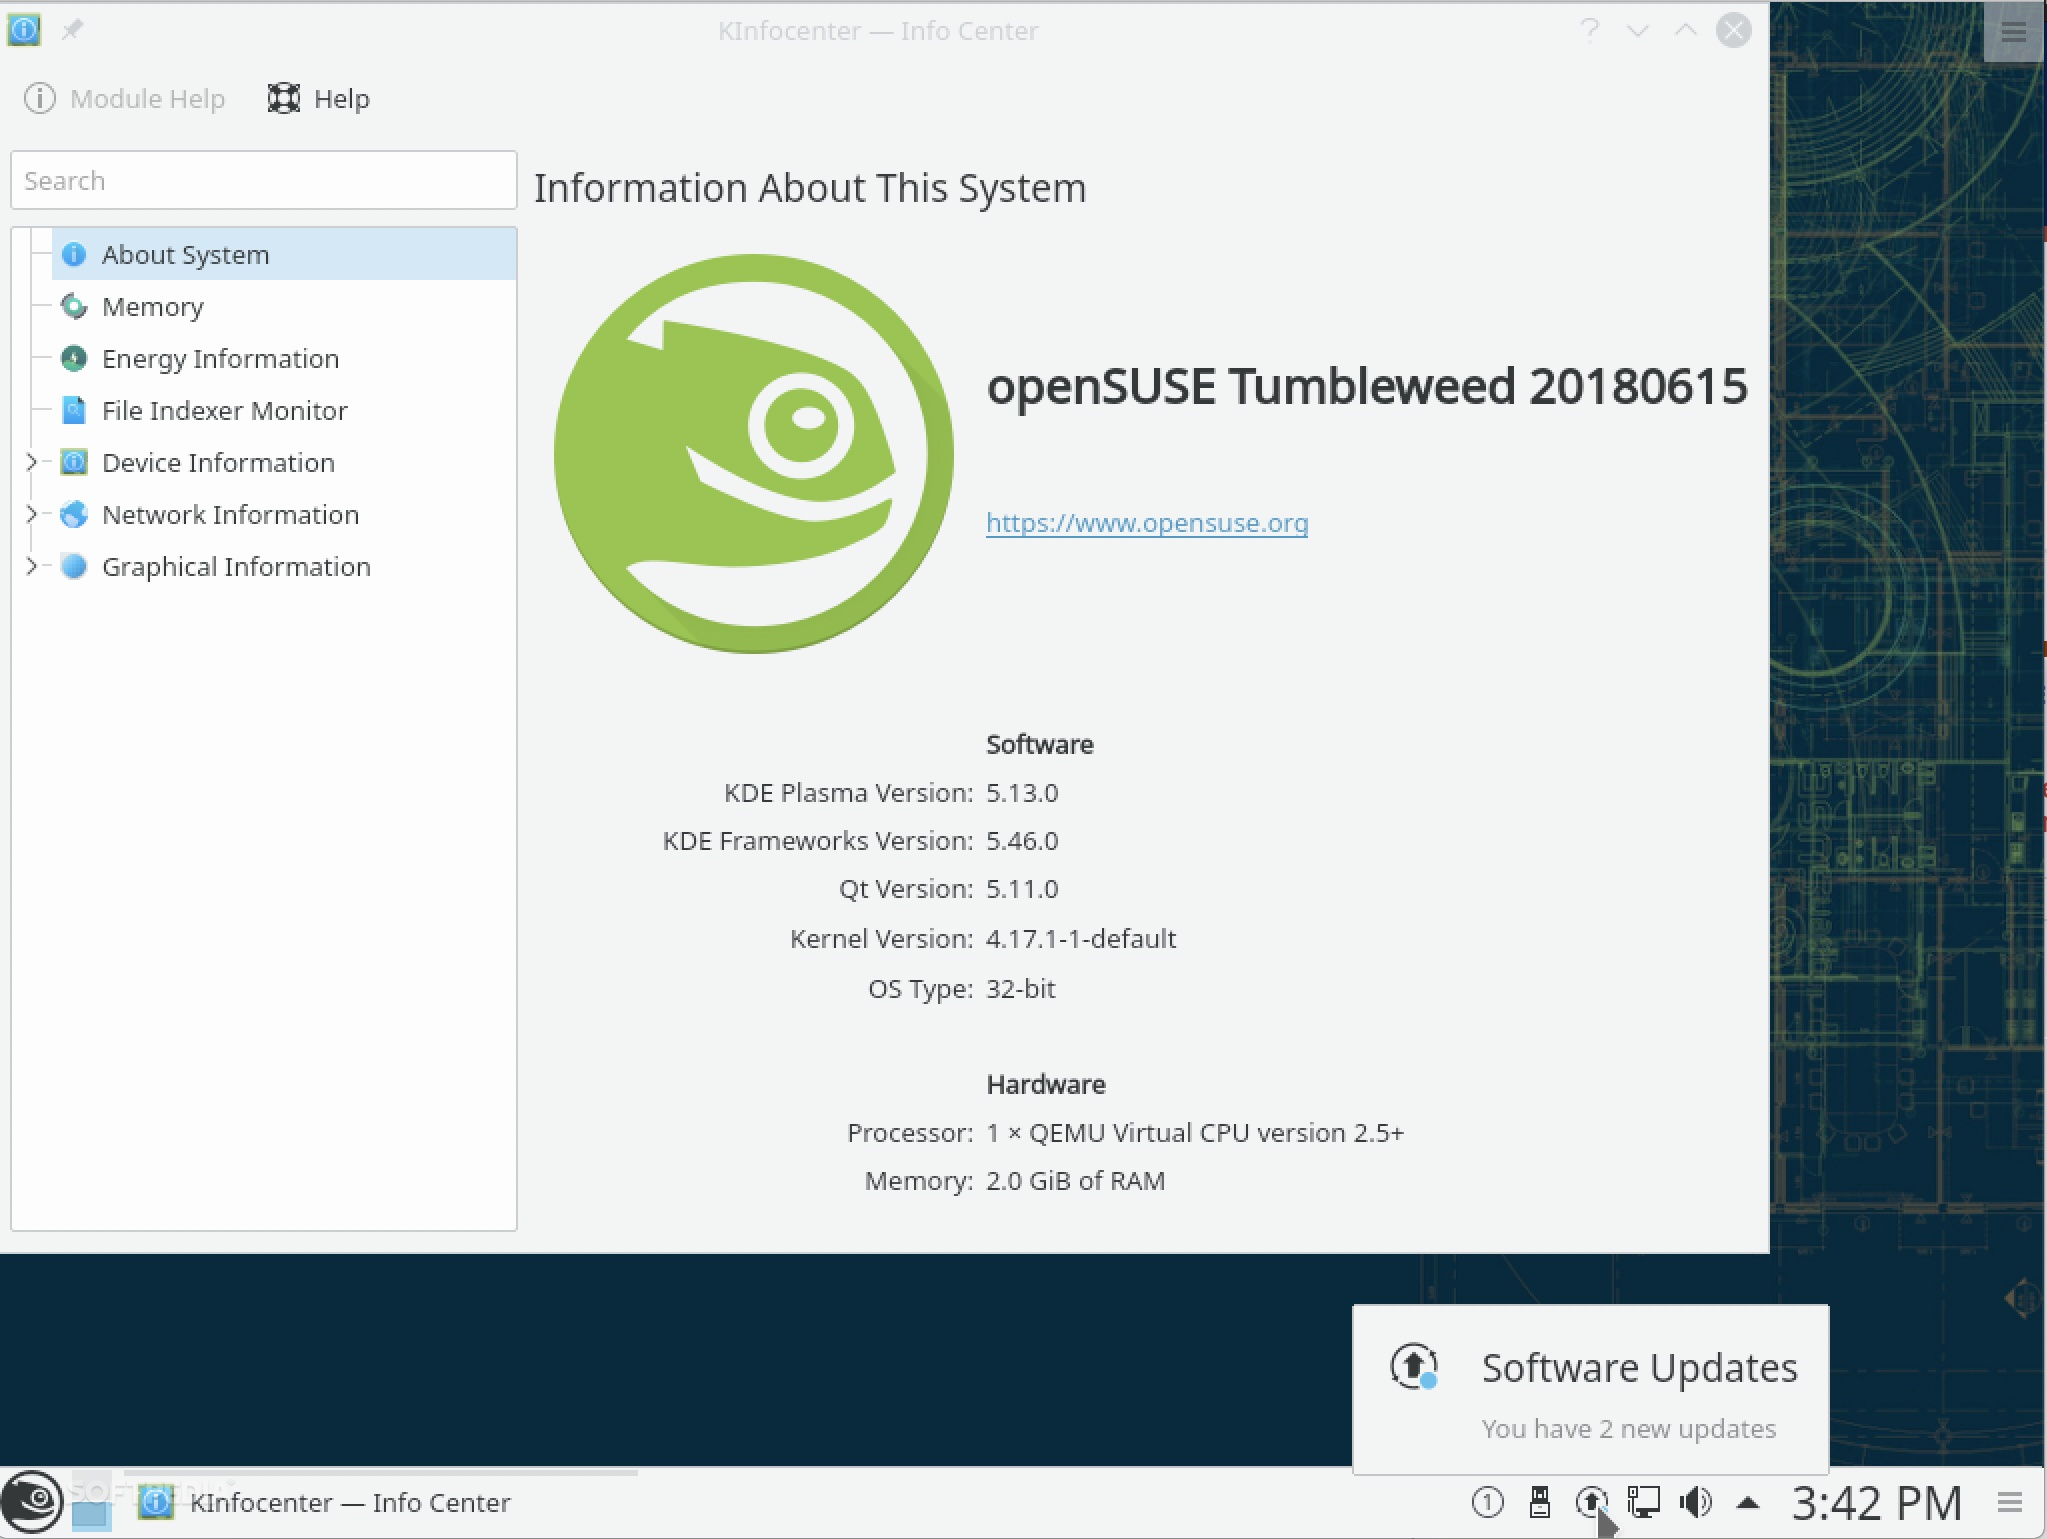 openSUSE Tumbleweed Is Now Powered by Linux Kernel 4 17, KDE